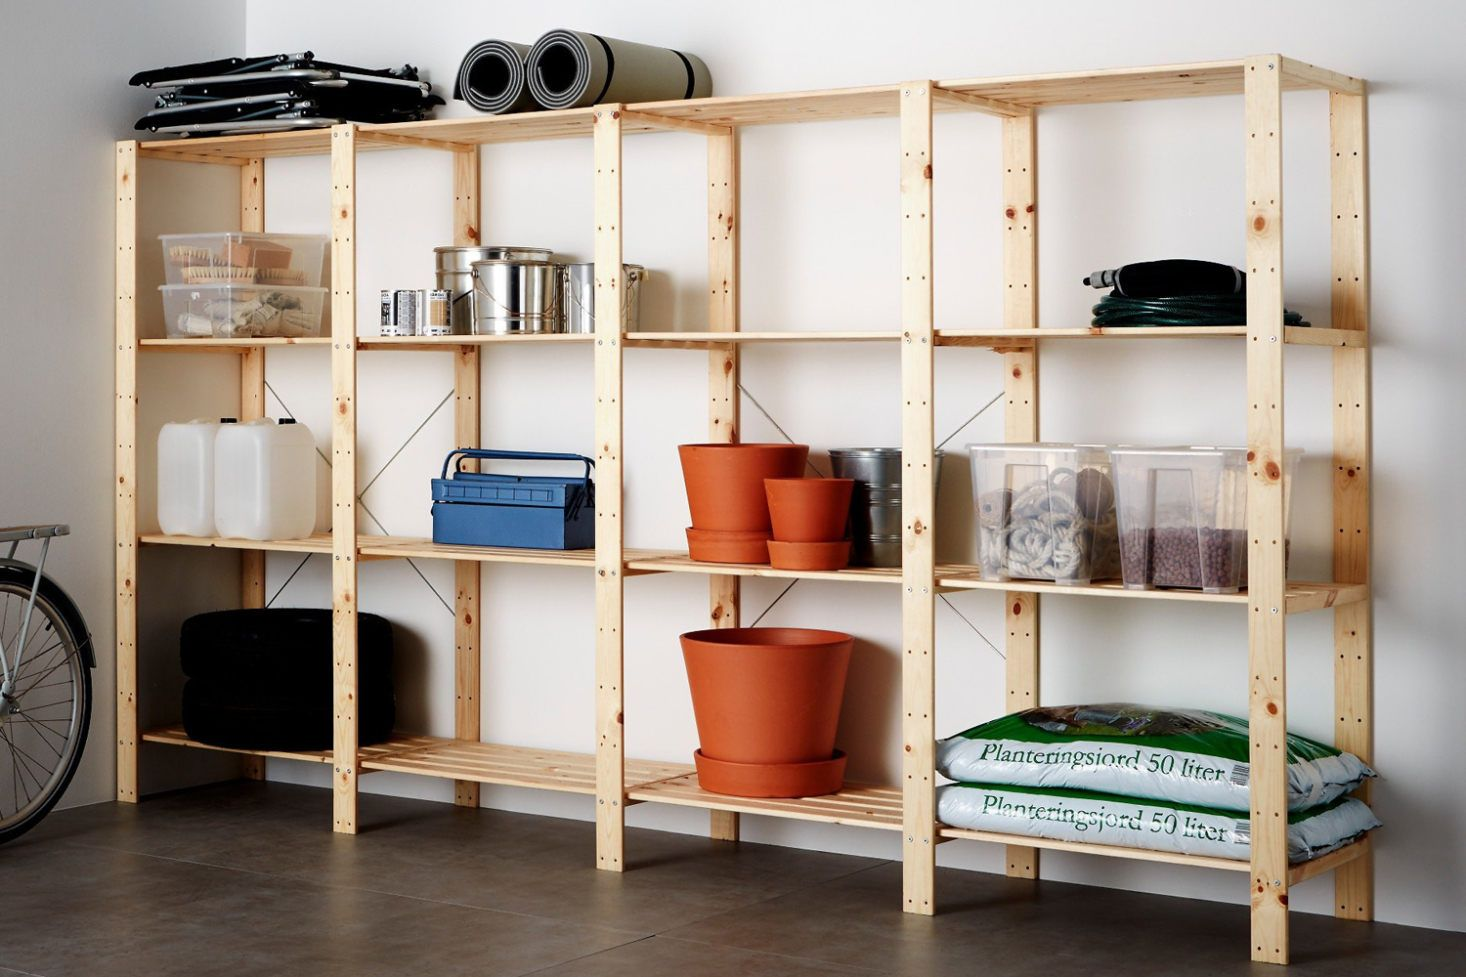 Your Garage Should Be As Clean And Organized As Anywhere In The House But Let S Face It No One Wants To Shell Out Serious Ca Shelving Unit Shelving Ikea Ivar